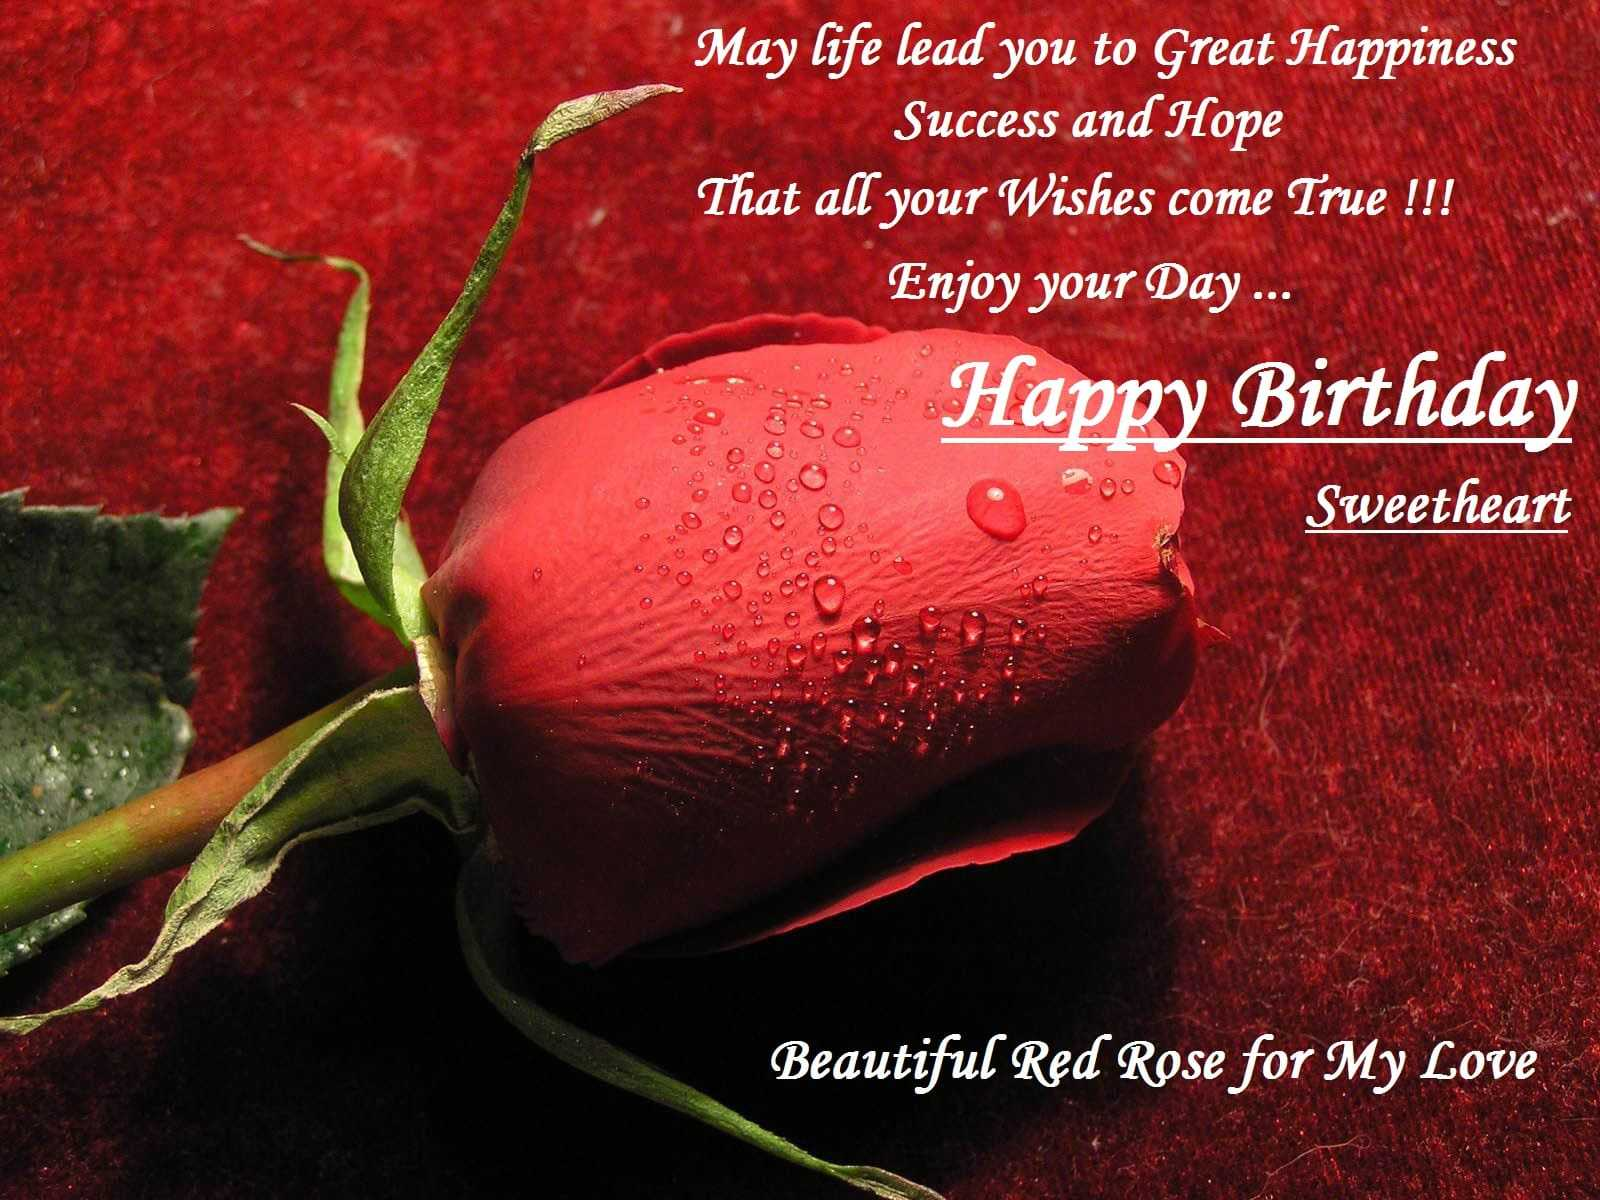 Birthday Greetings For Wife Abroad From Husband In English Free Download Todayz News